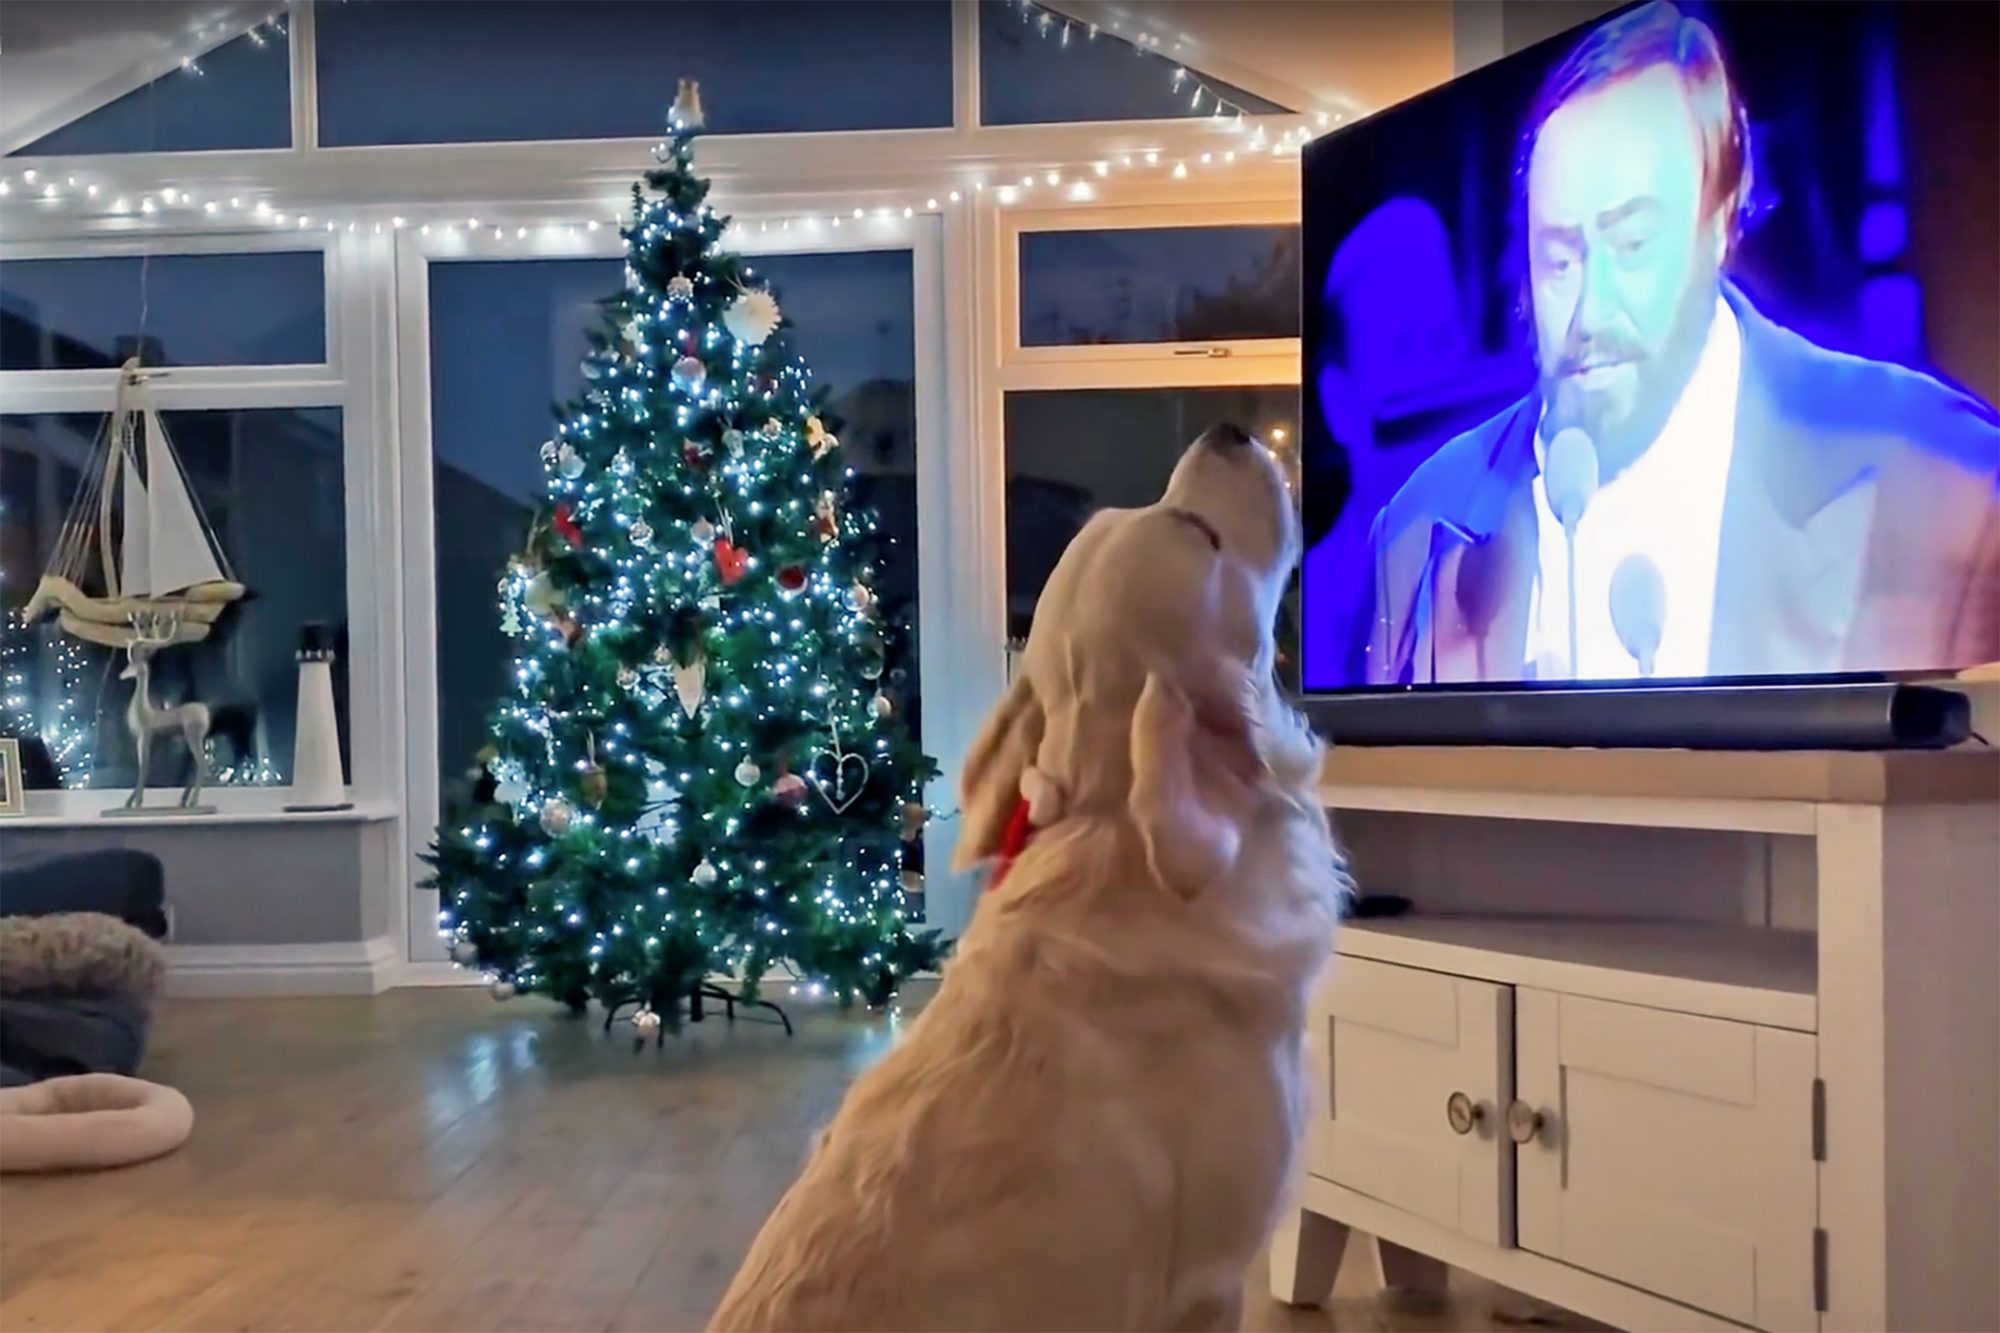 Yellow lab retriever stares up at TV with Christmas tree in background